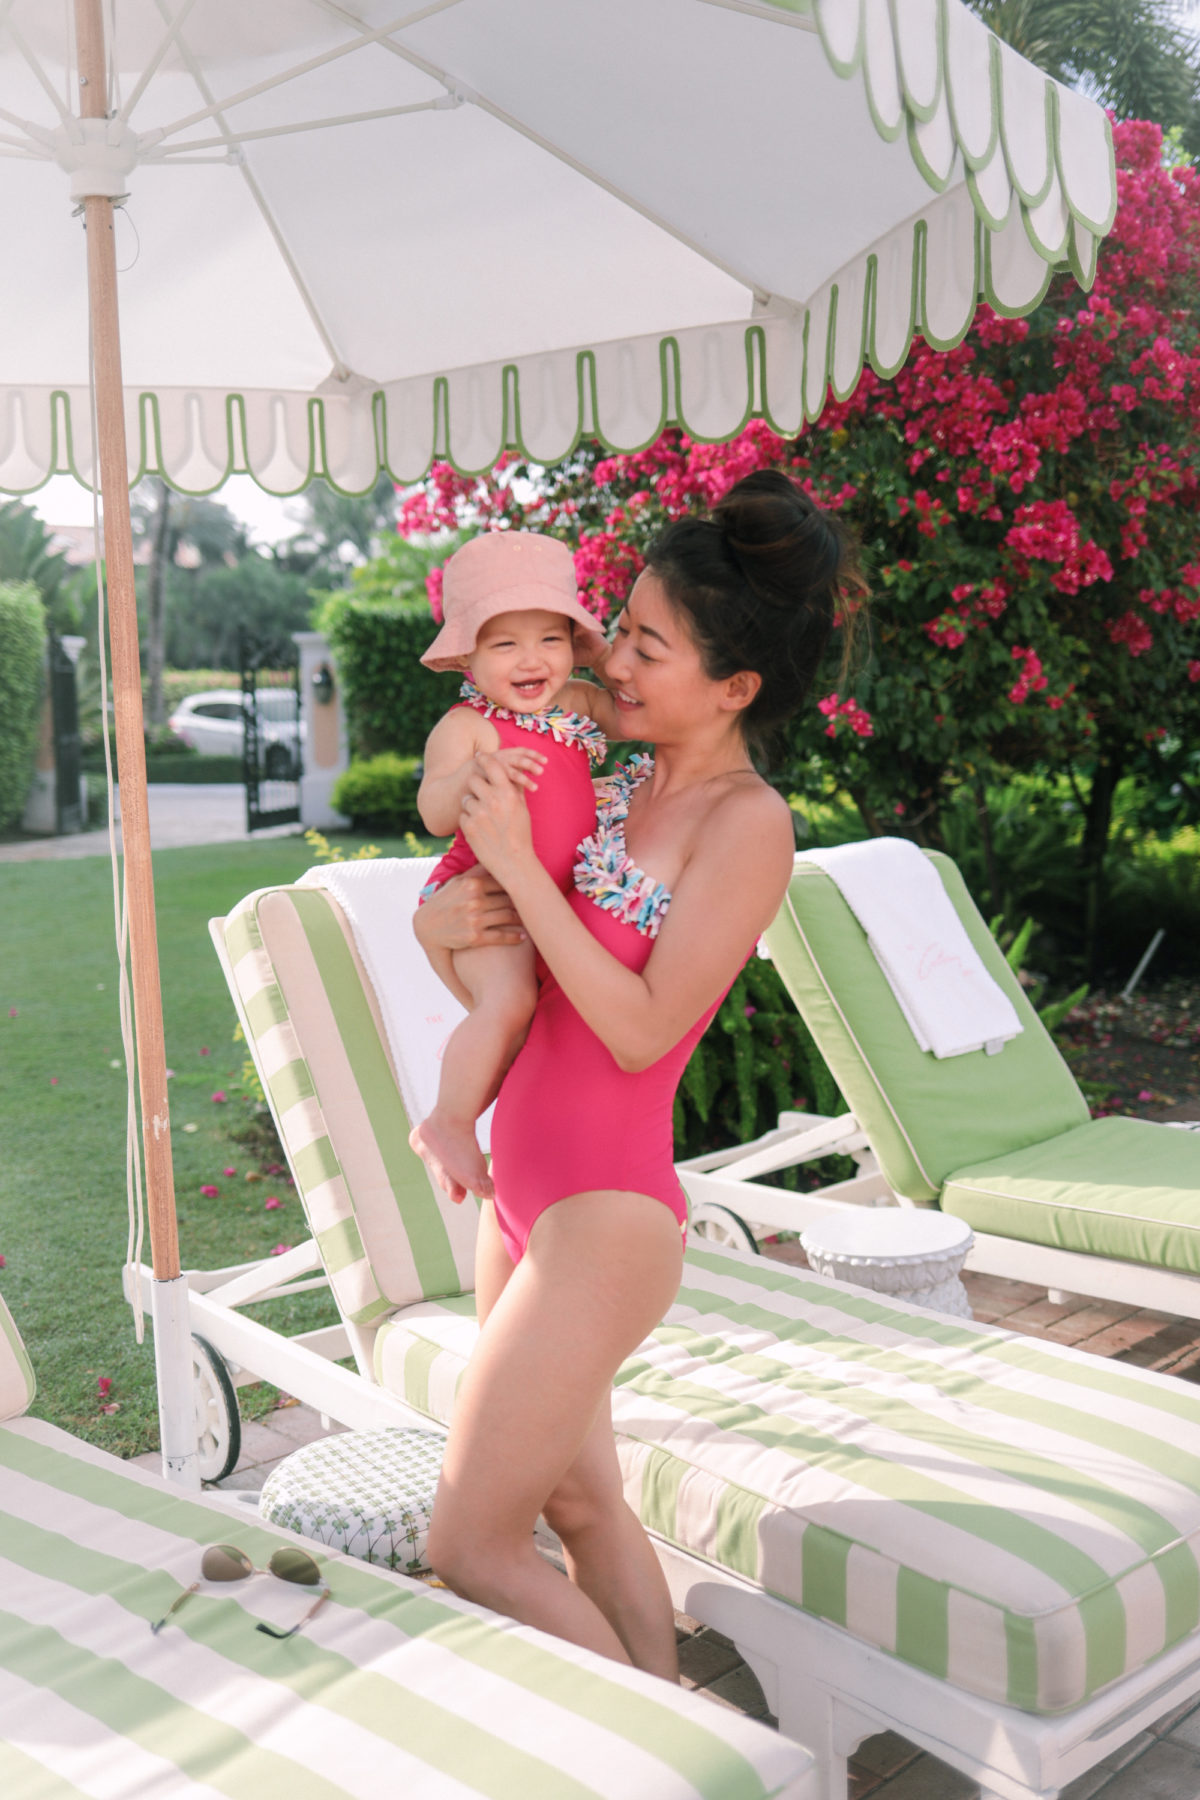 mommy and me summer outfits baby girl swimsuit beach pool